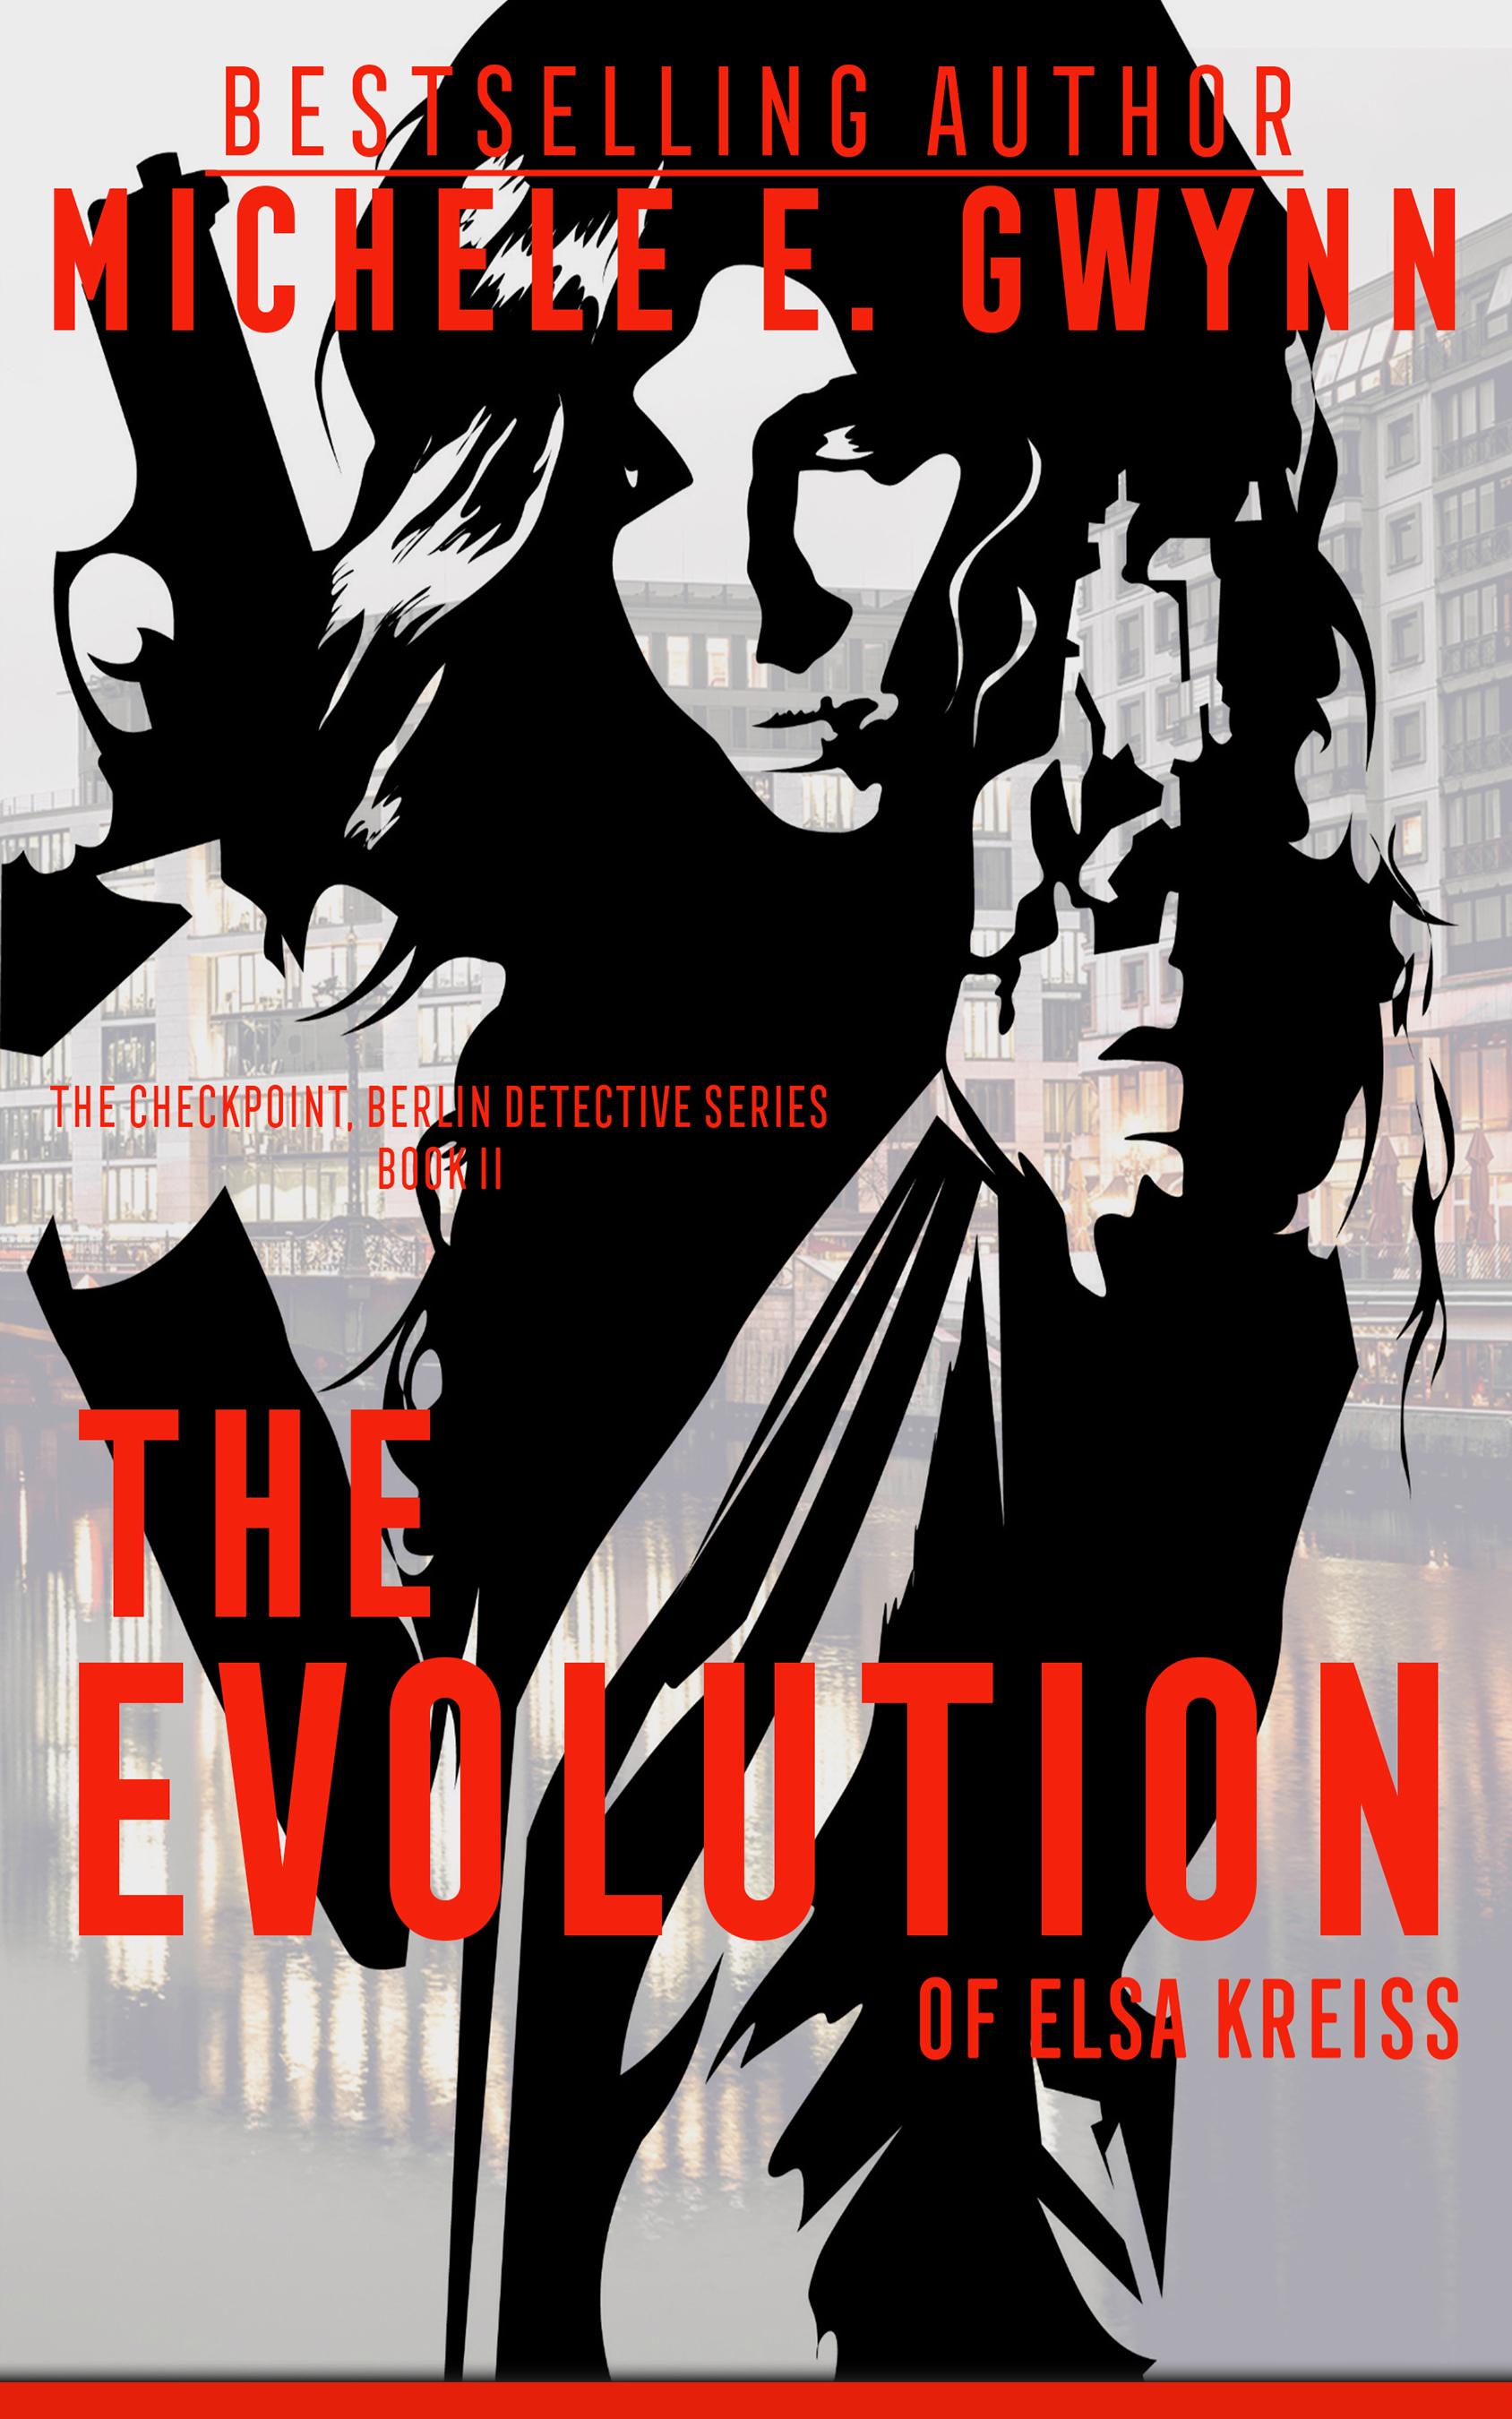 The Evolution of Elsa Kreiss, The Checkpoint, Berlin Detective Series Book 2 by Michele E. Gwynn